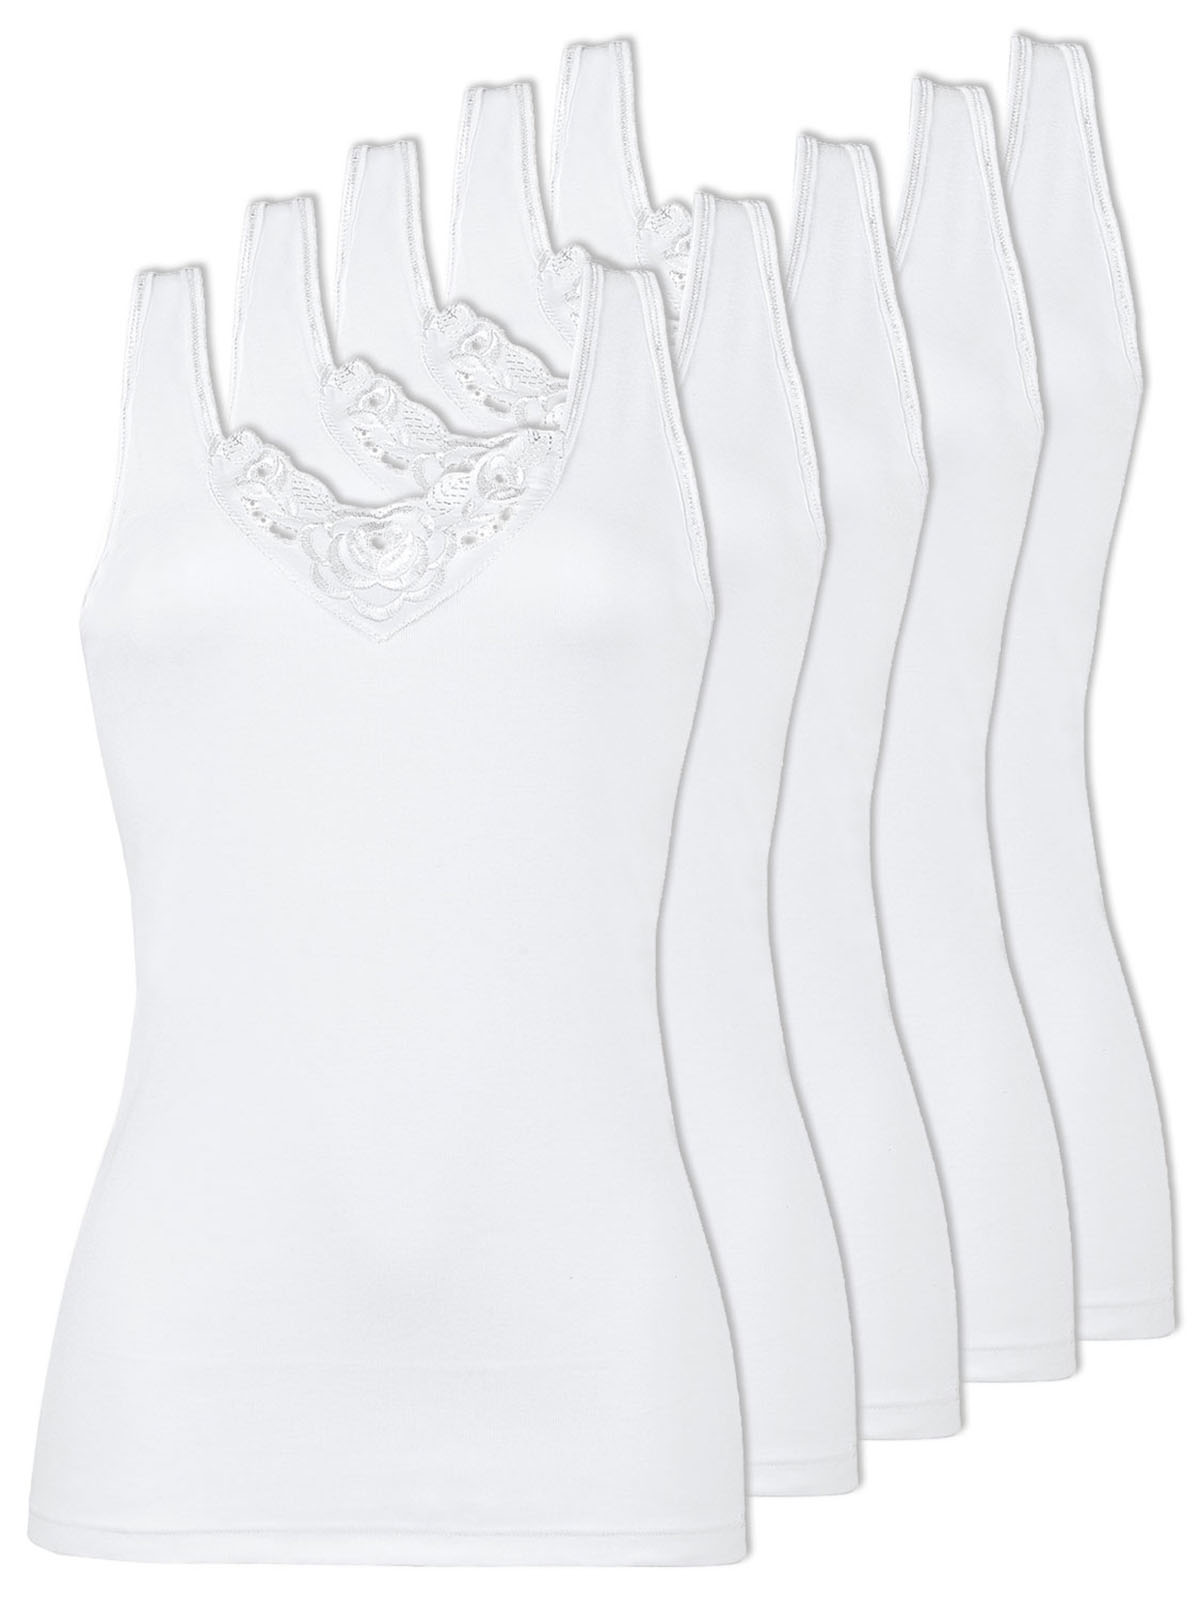 Naturana Pack of 5 Women's Undershirt 802501